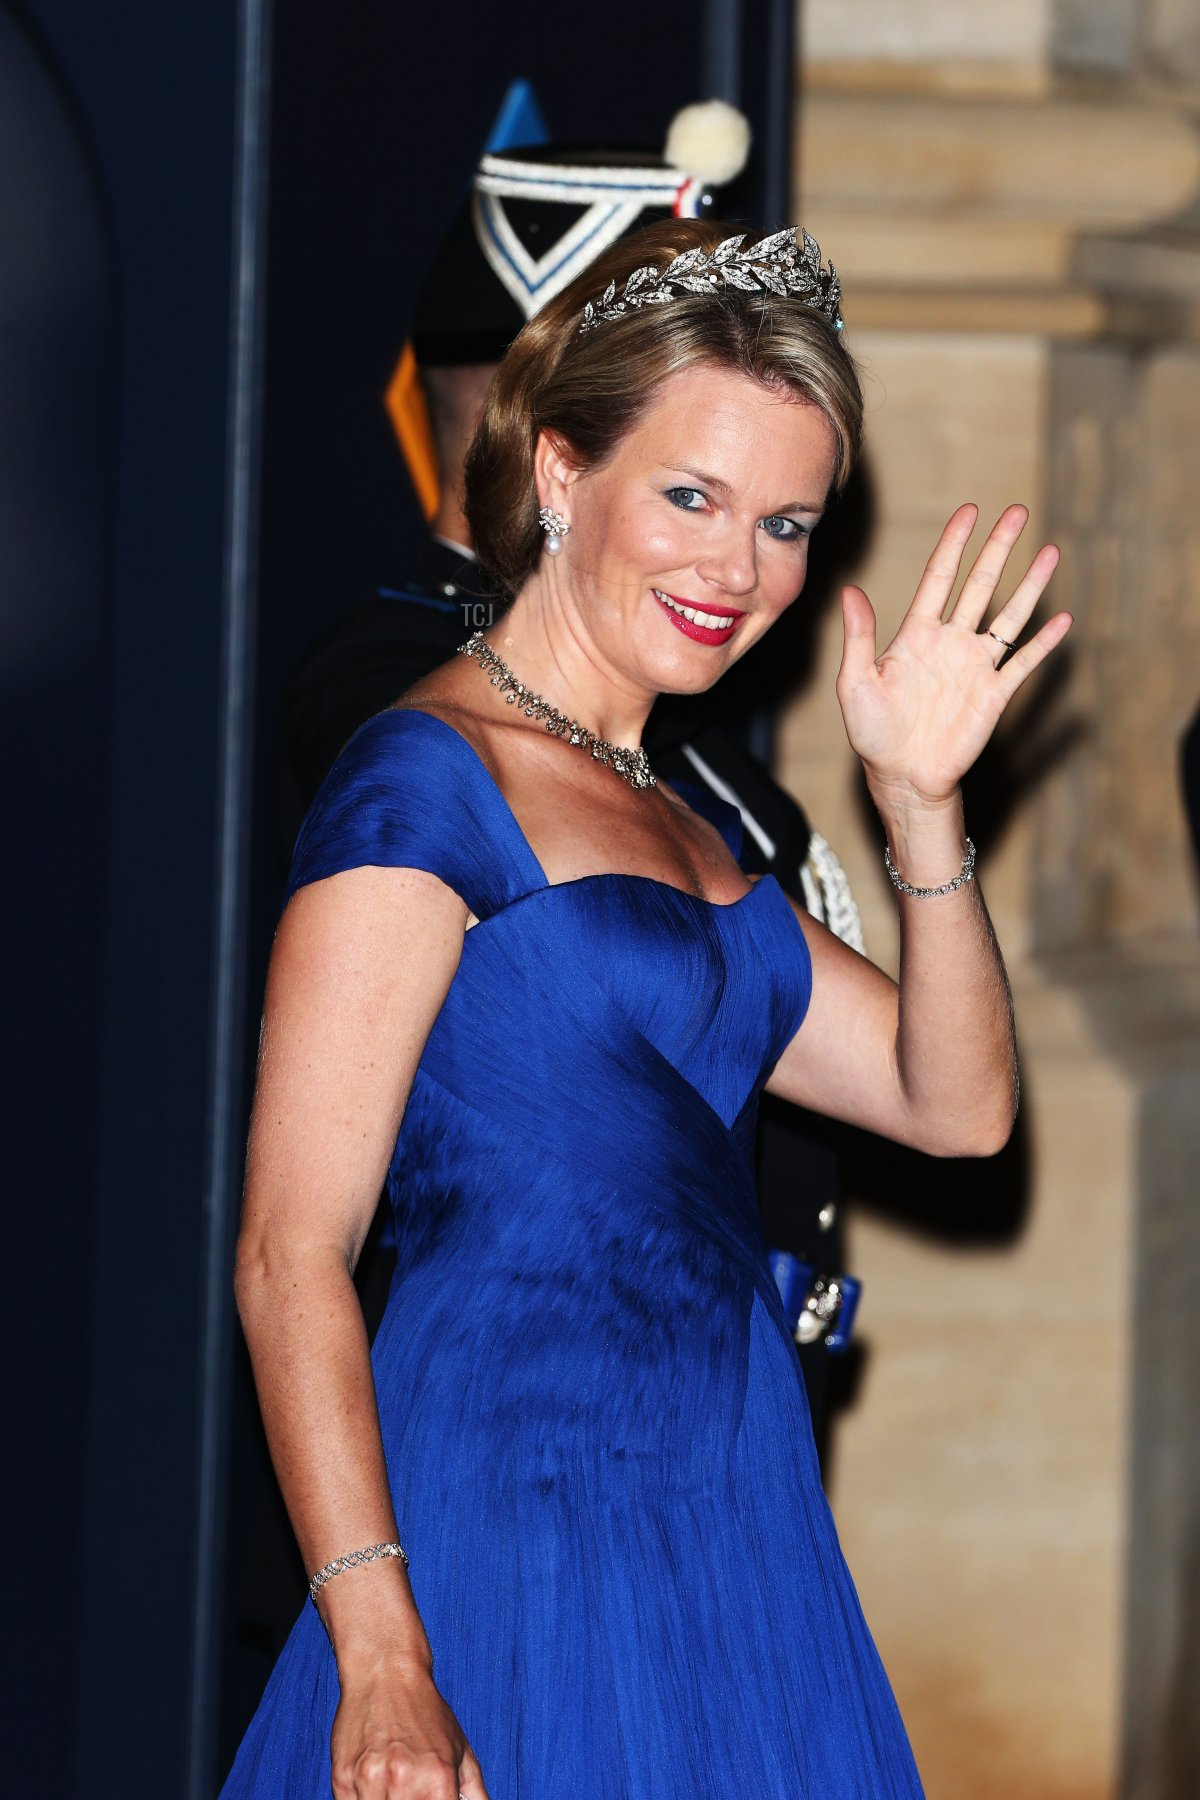 Princess Mathilde of Belgium attends the Gala dinner for the wedding of Prince Guillaume Of Luxembourg and Stephanie de Lannoy at the Grand-ducal Palace on October 19, 2012 in Luxembourg